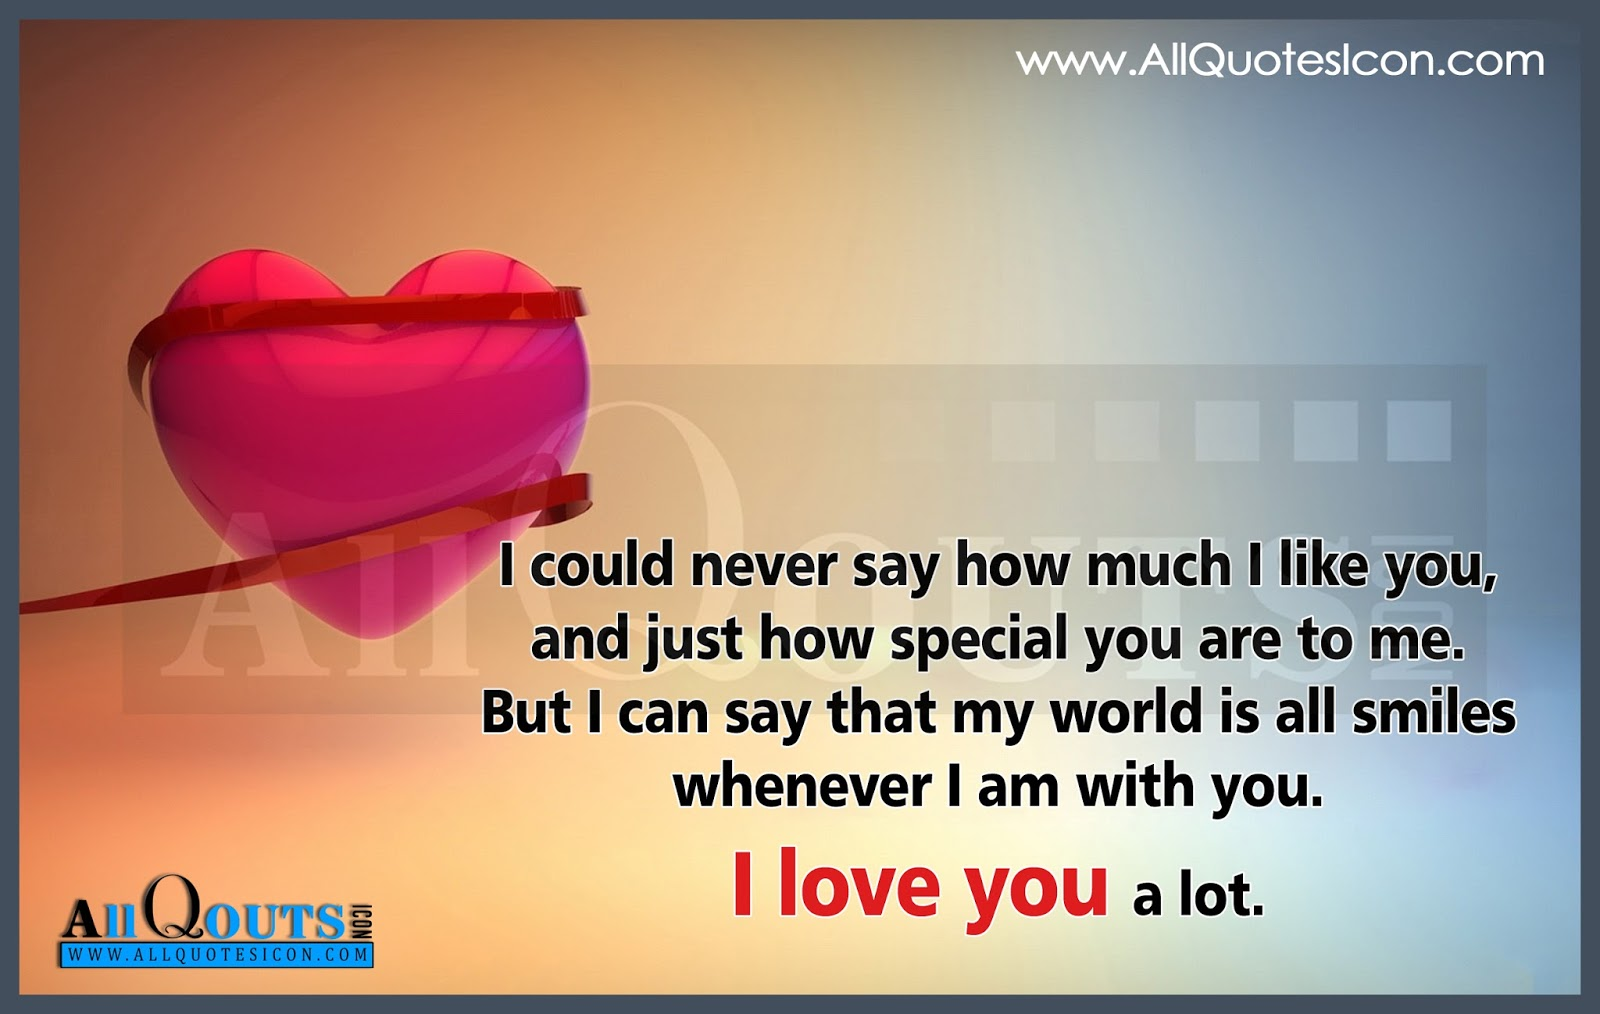 Iam with You Love Quotes and Images Awesome Heart Touching Love Messages English Quotes Pictures ...